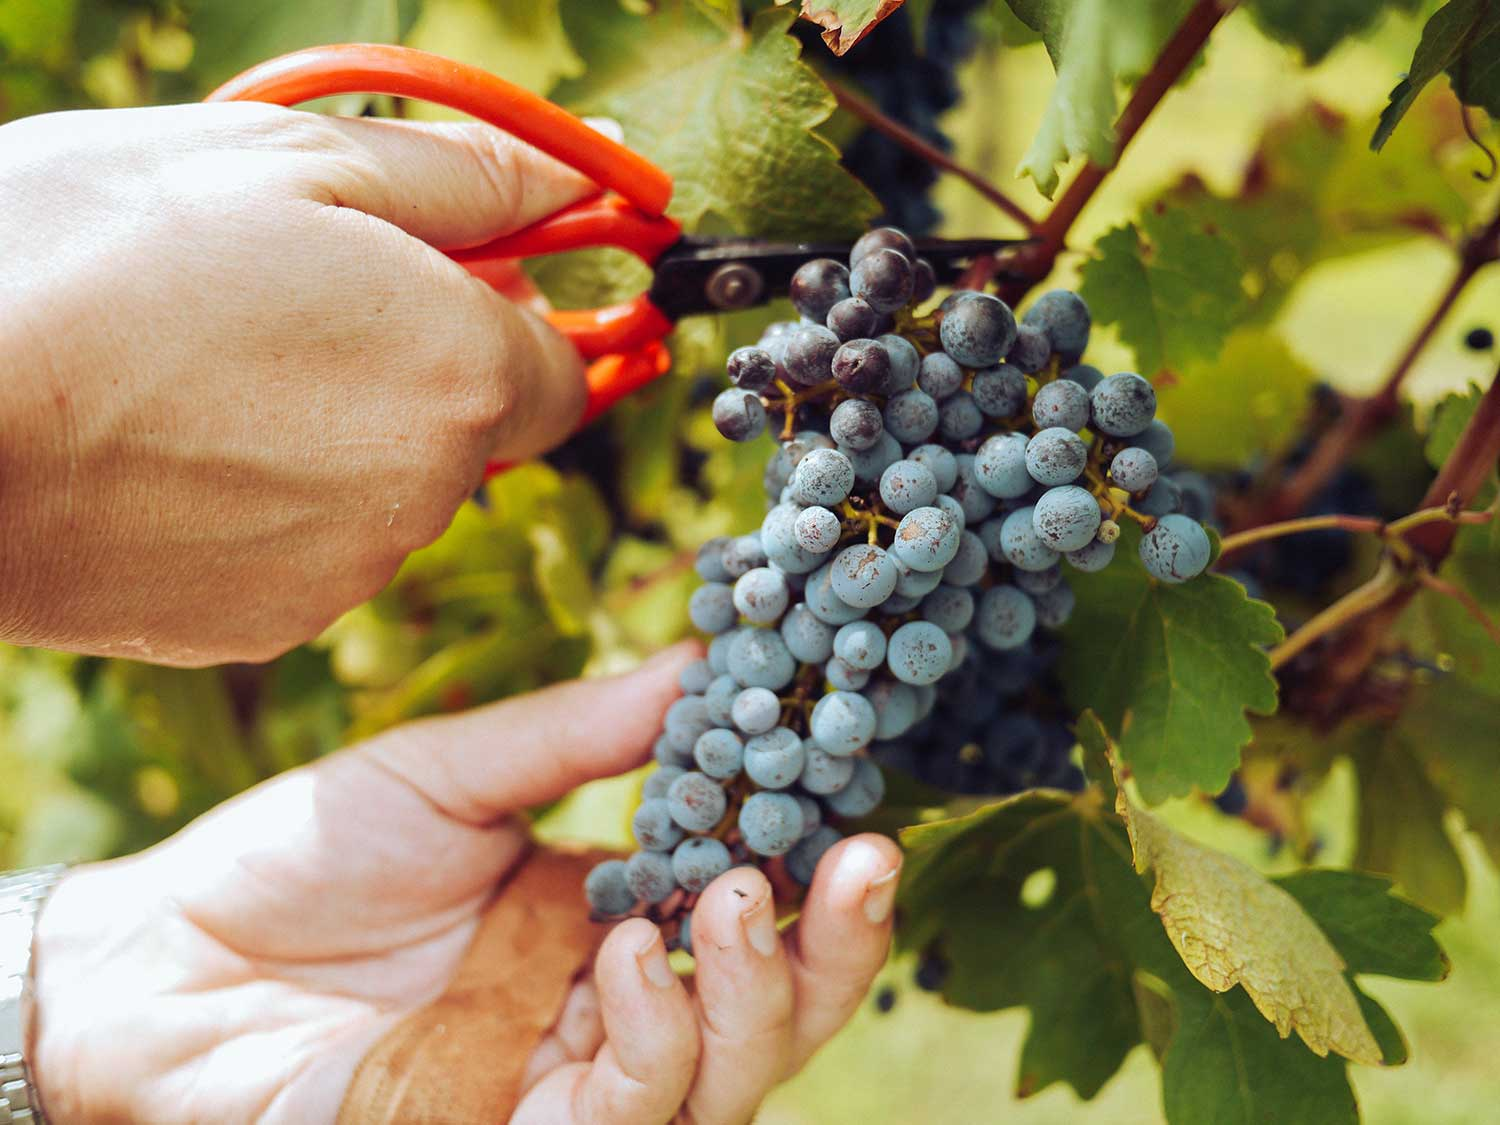 Cutting grapes for wine.